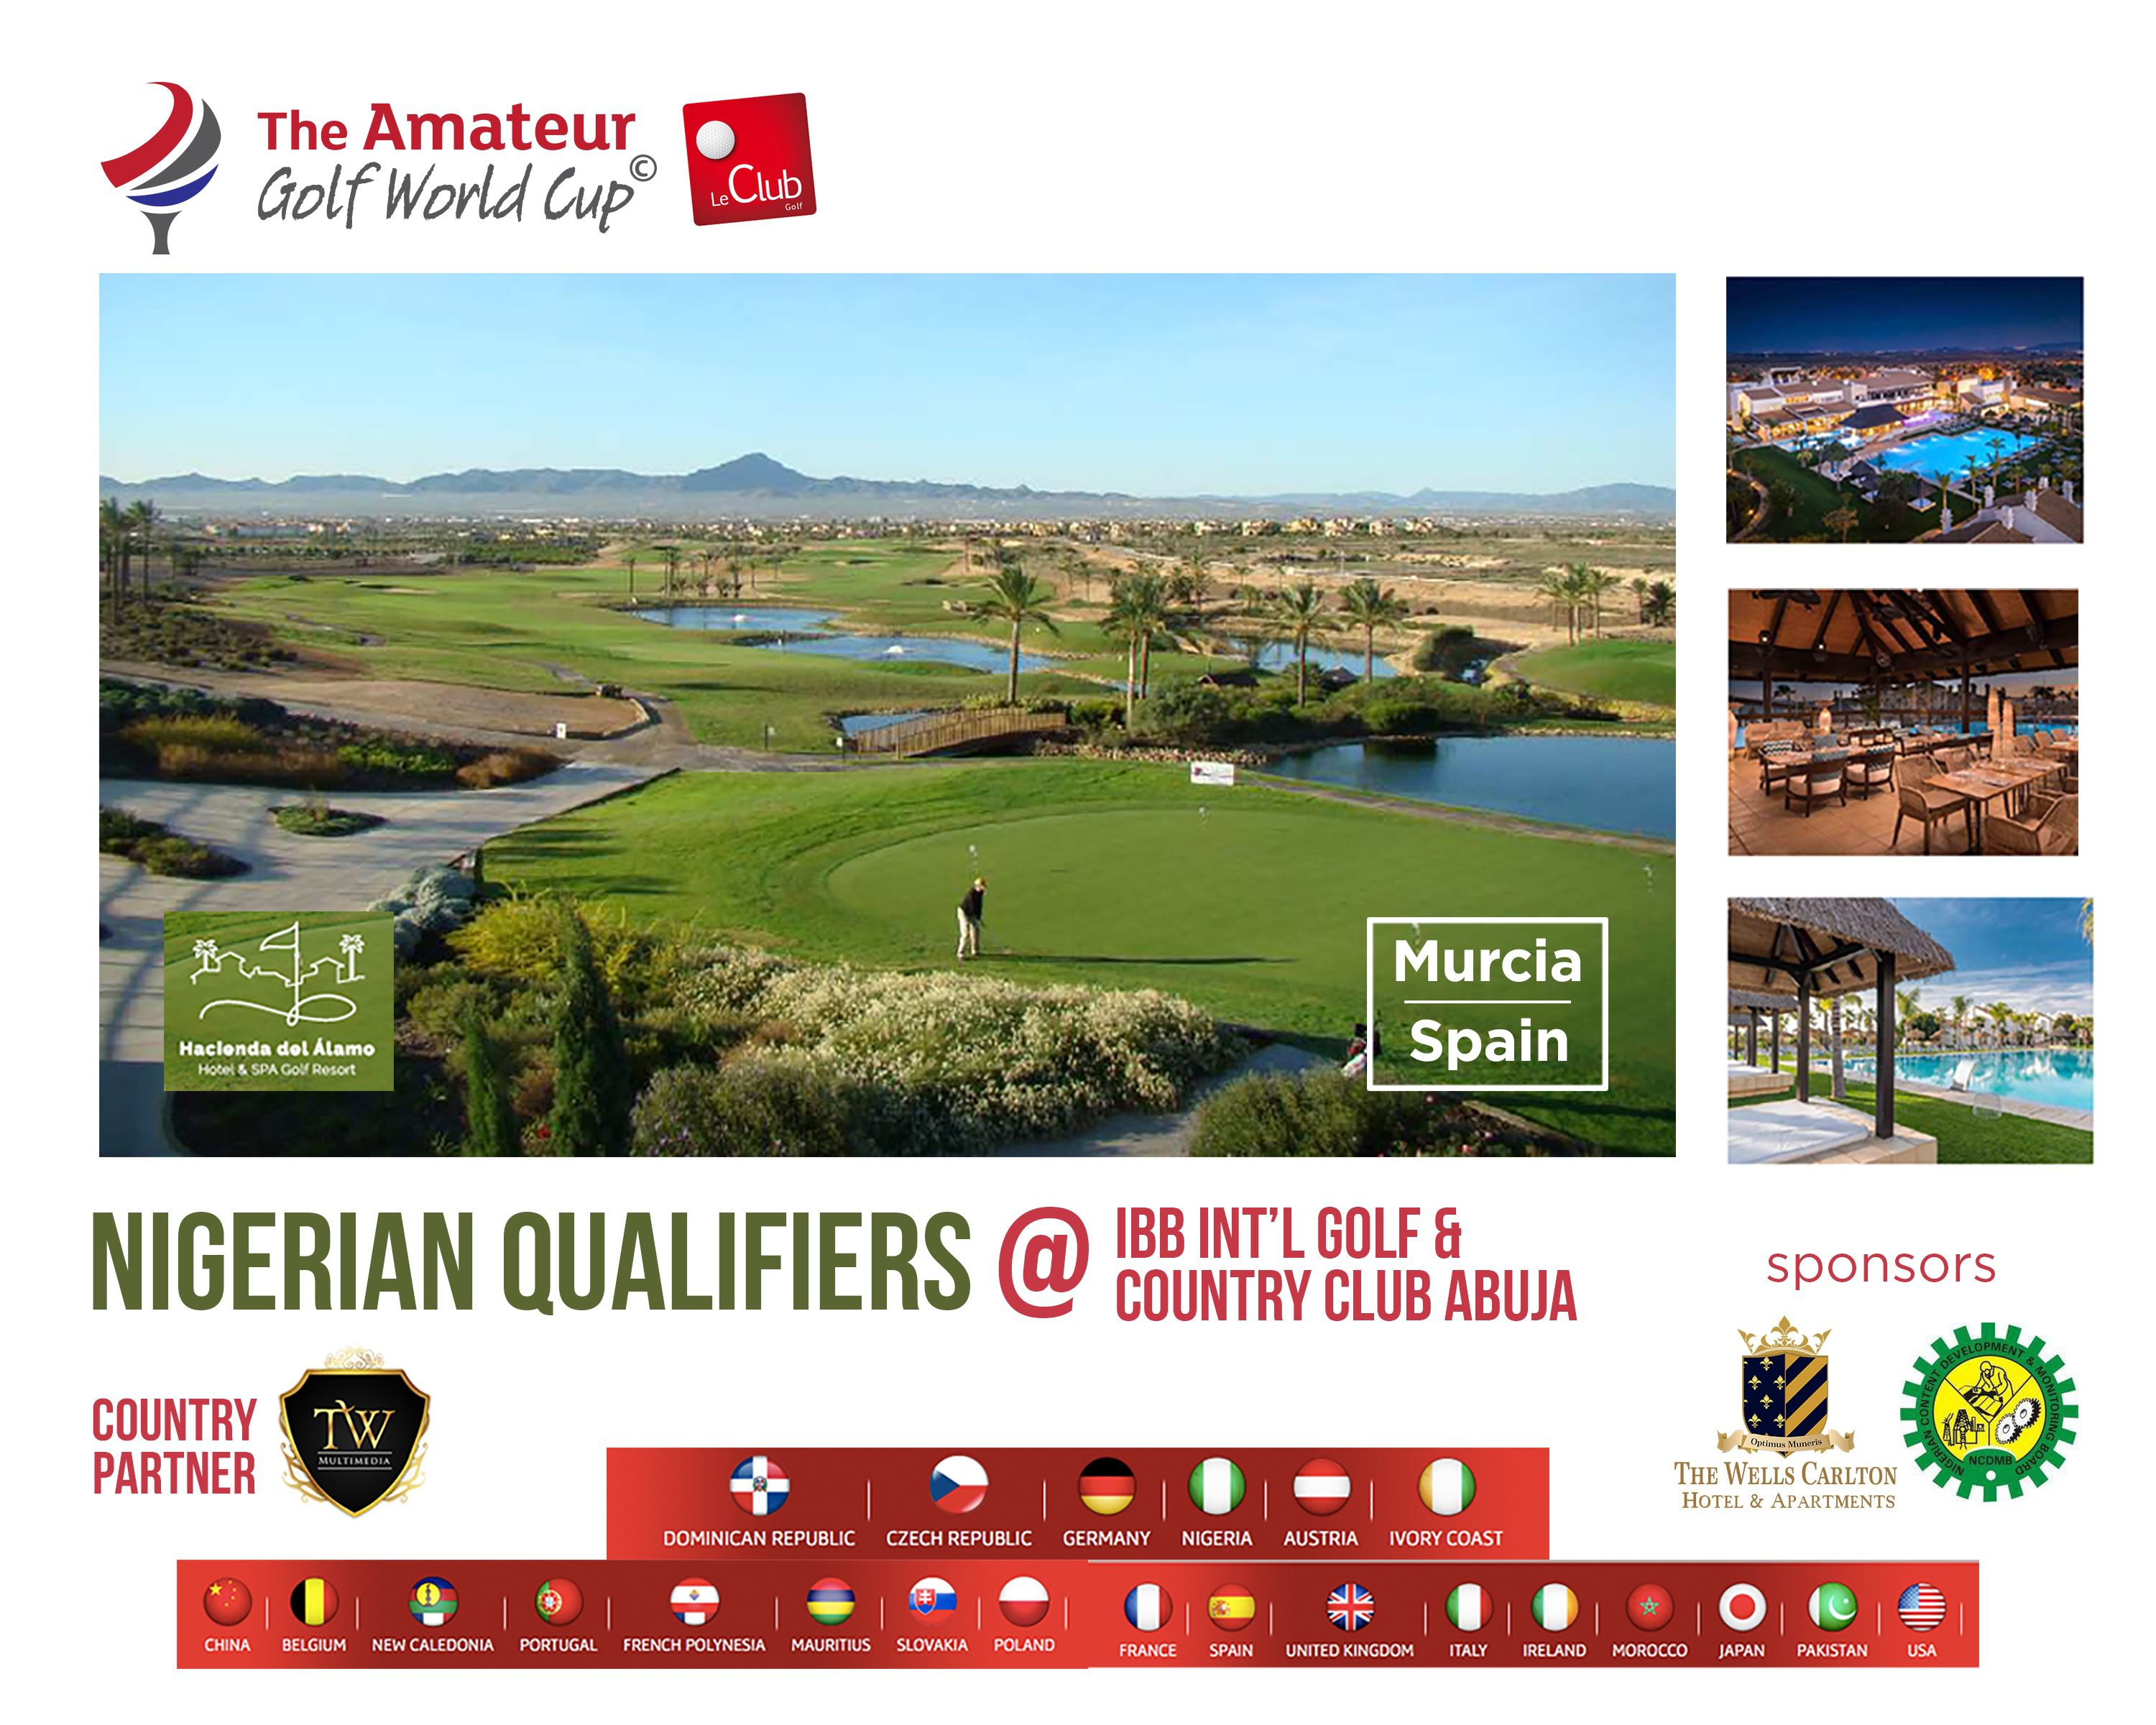 The Amateur golf final